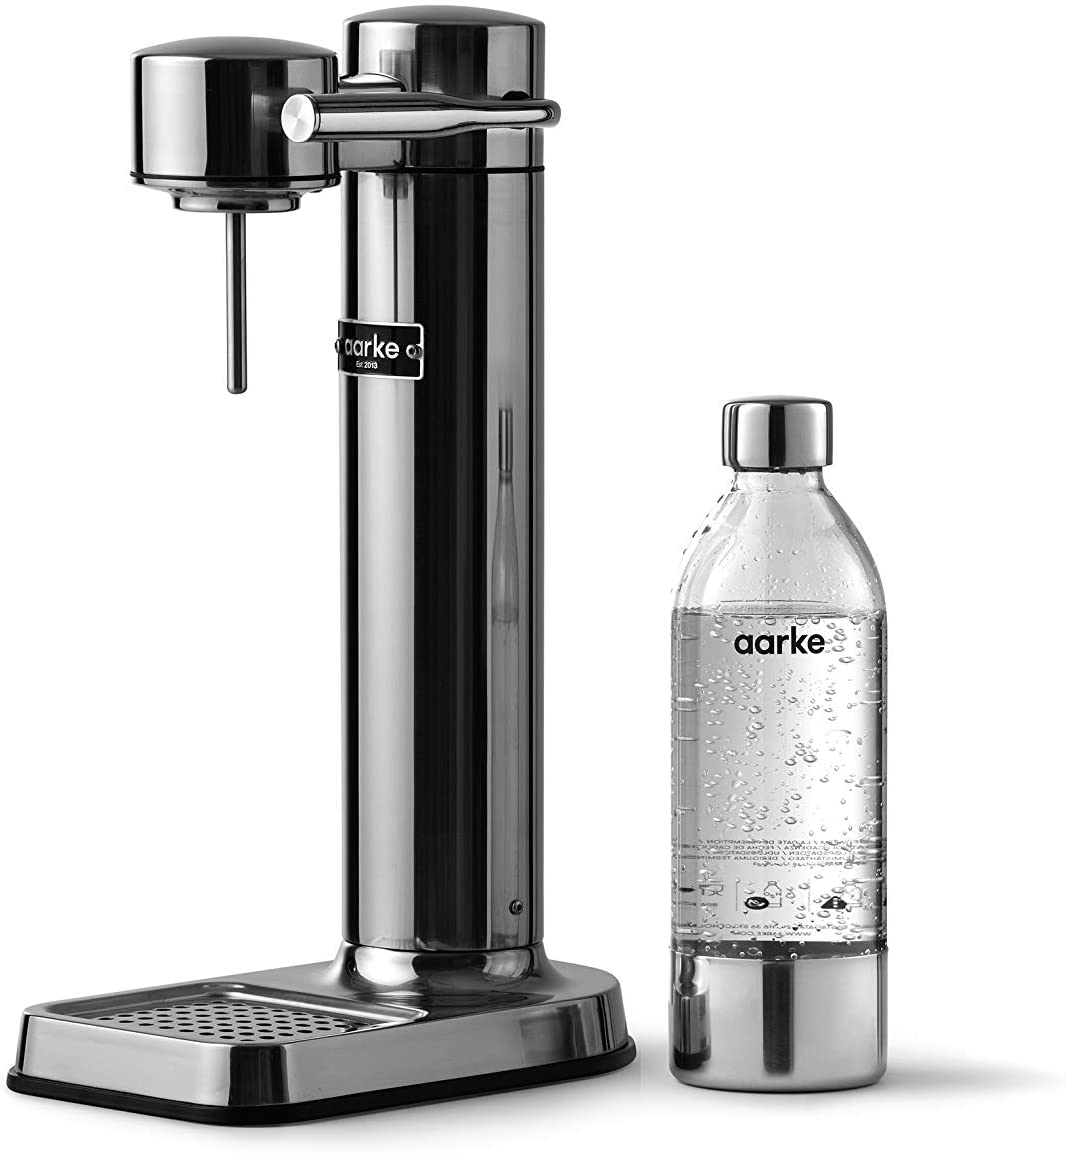 Sparkling & Seltzer Water Maker with PET Bottle